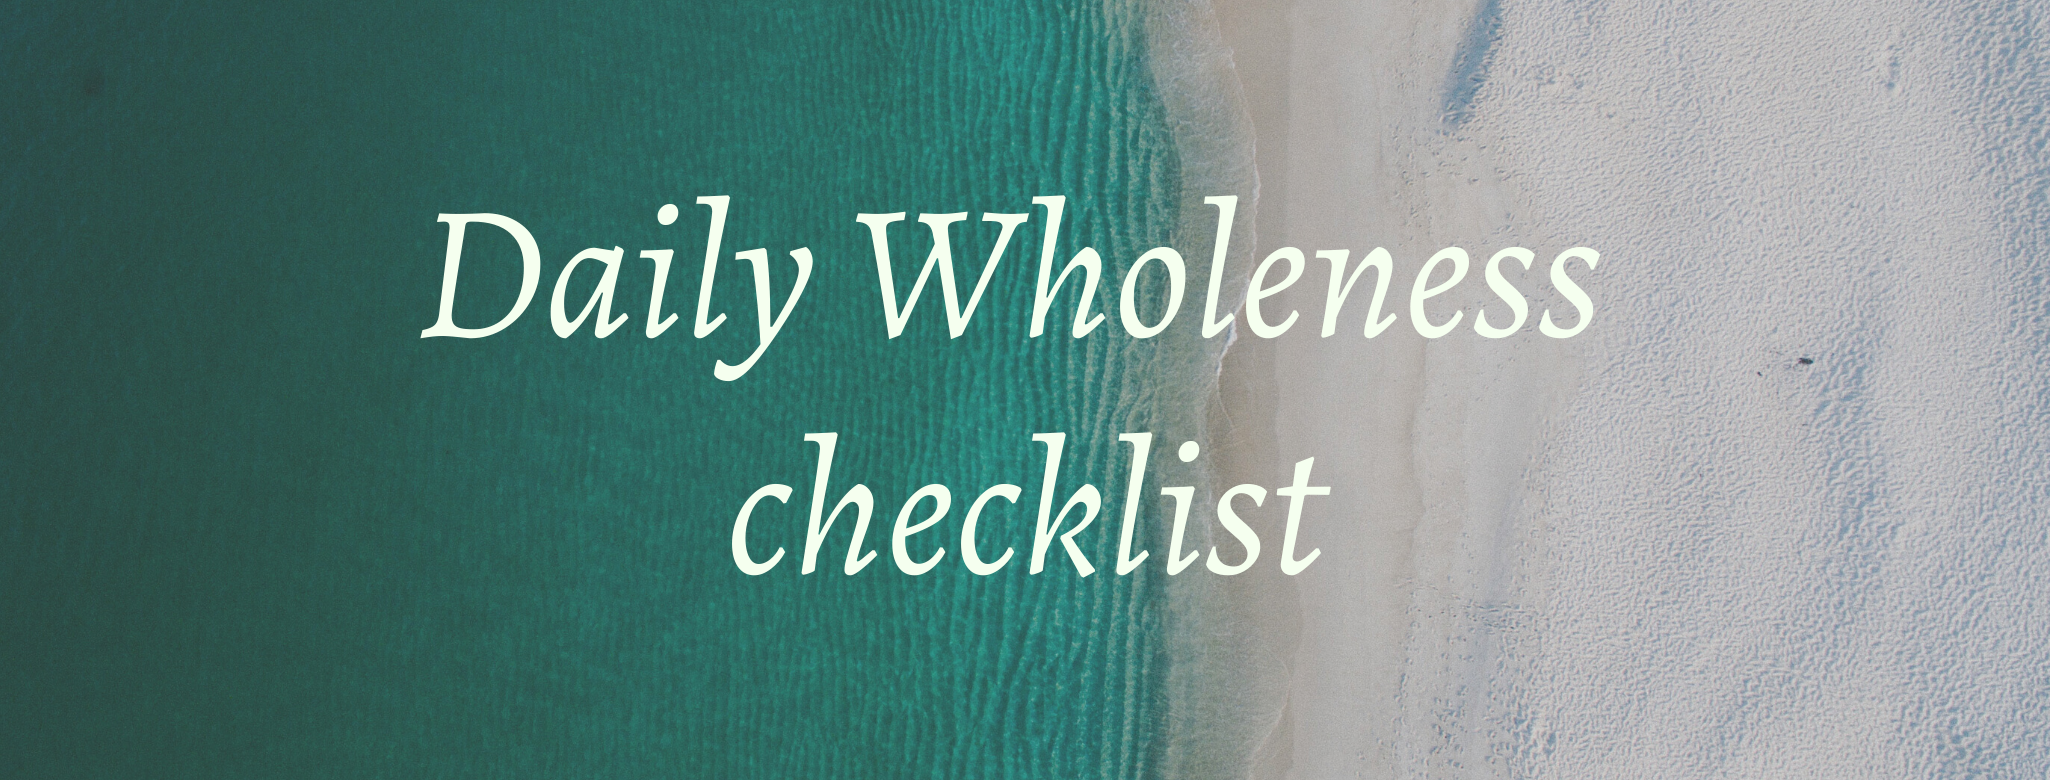 Daily Wholeness Checklist